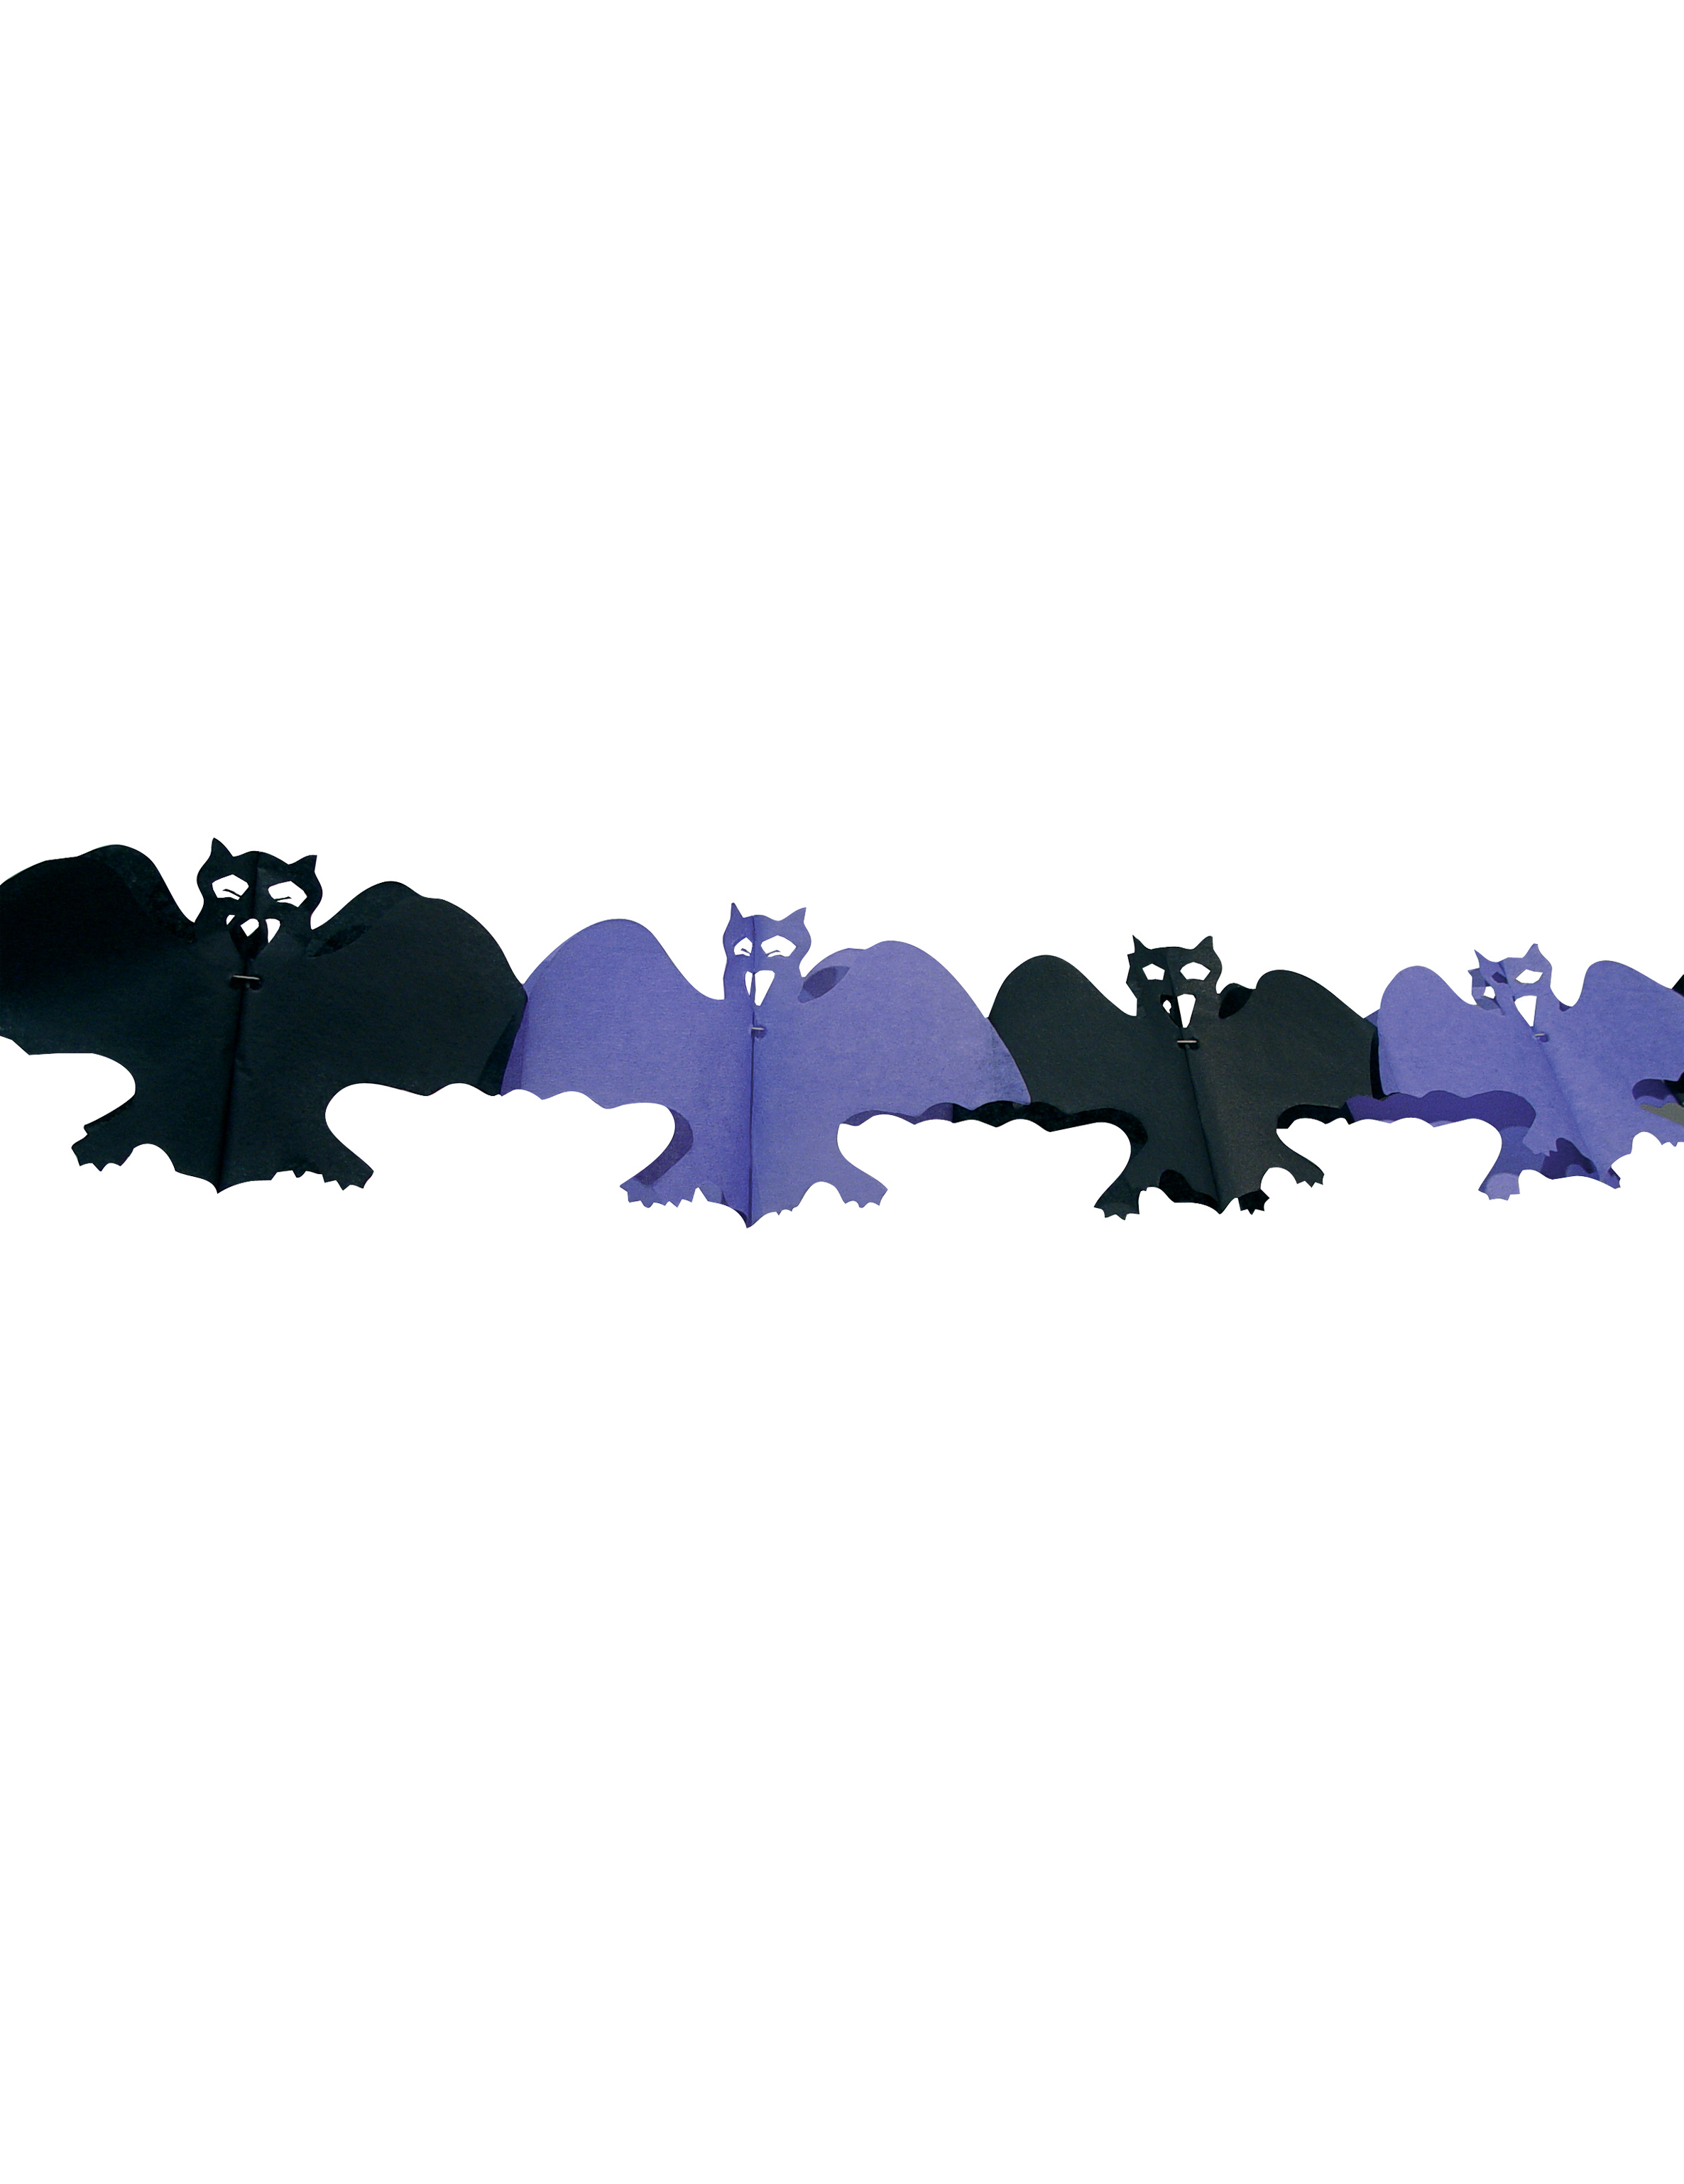 Bat kit for halloween : Decorations, and fancy dress costumes - Vegaoo